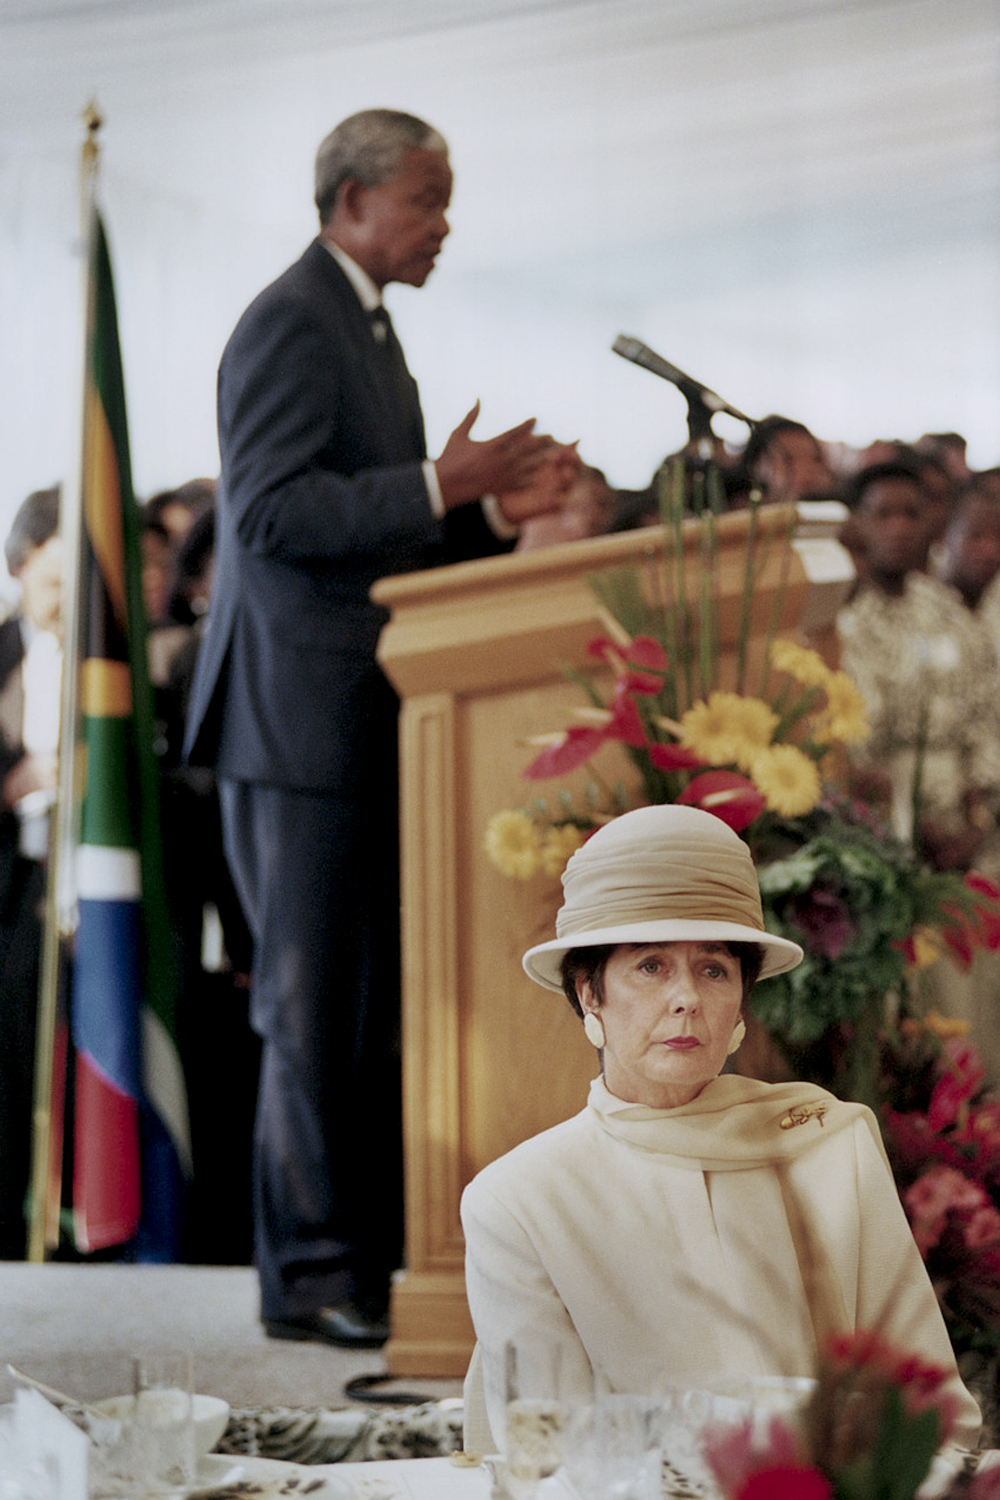 Minutes after Mandela was inaugurated as the first President of a democratic and free South Africa, David Turnley managed to earn access to an exclusive luncheon. During his first speech in front of heads of state, the wife of the former President F. W. De Klerk couldn't bring herself to turn and listen to the new President.